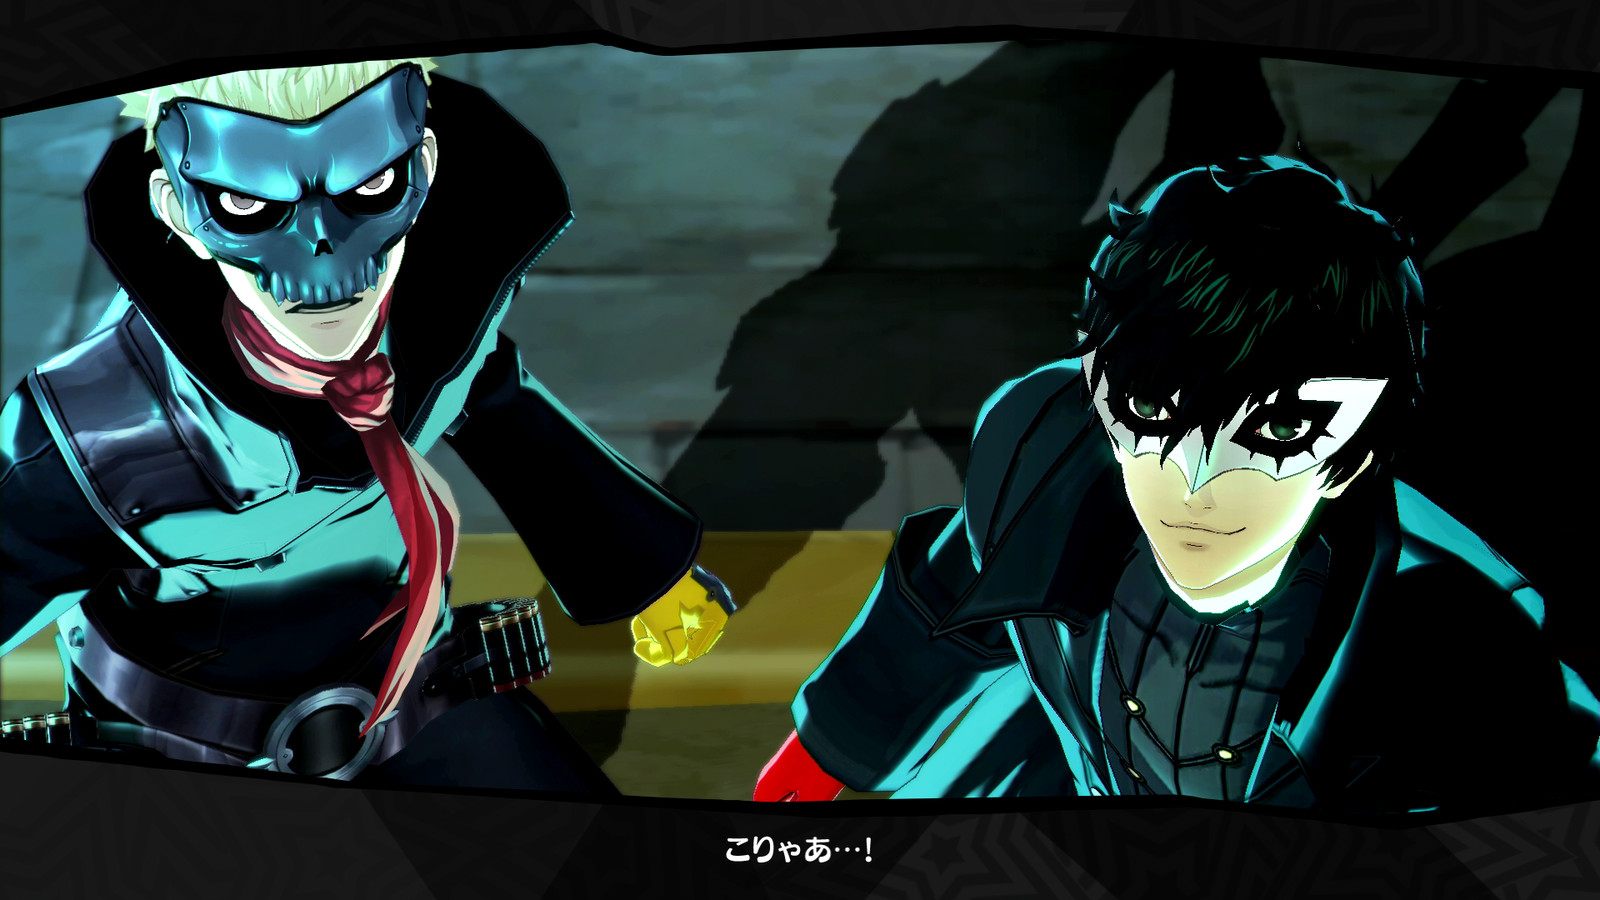 Persona 5 trailer offers new glimpse of stylish adventuring